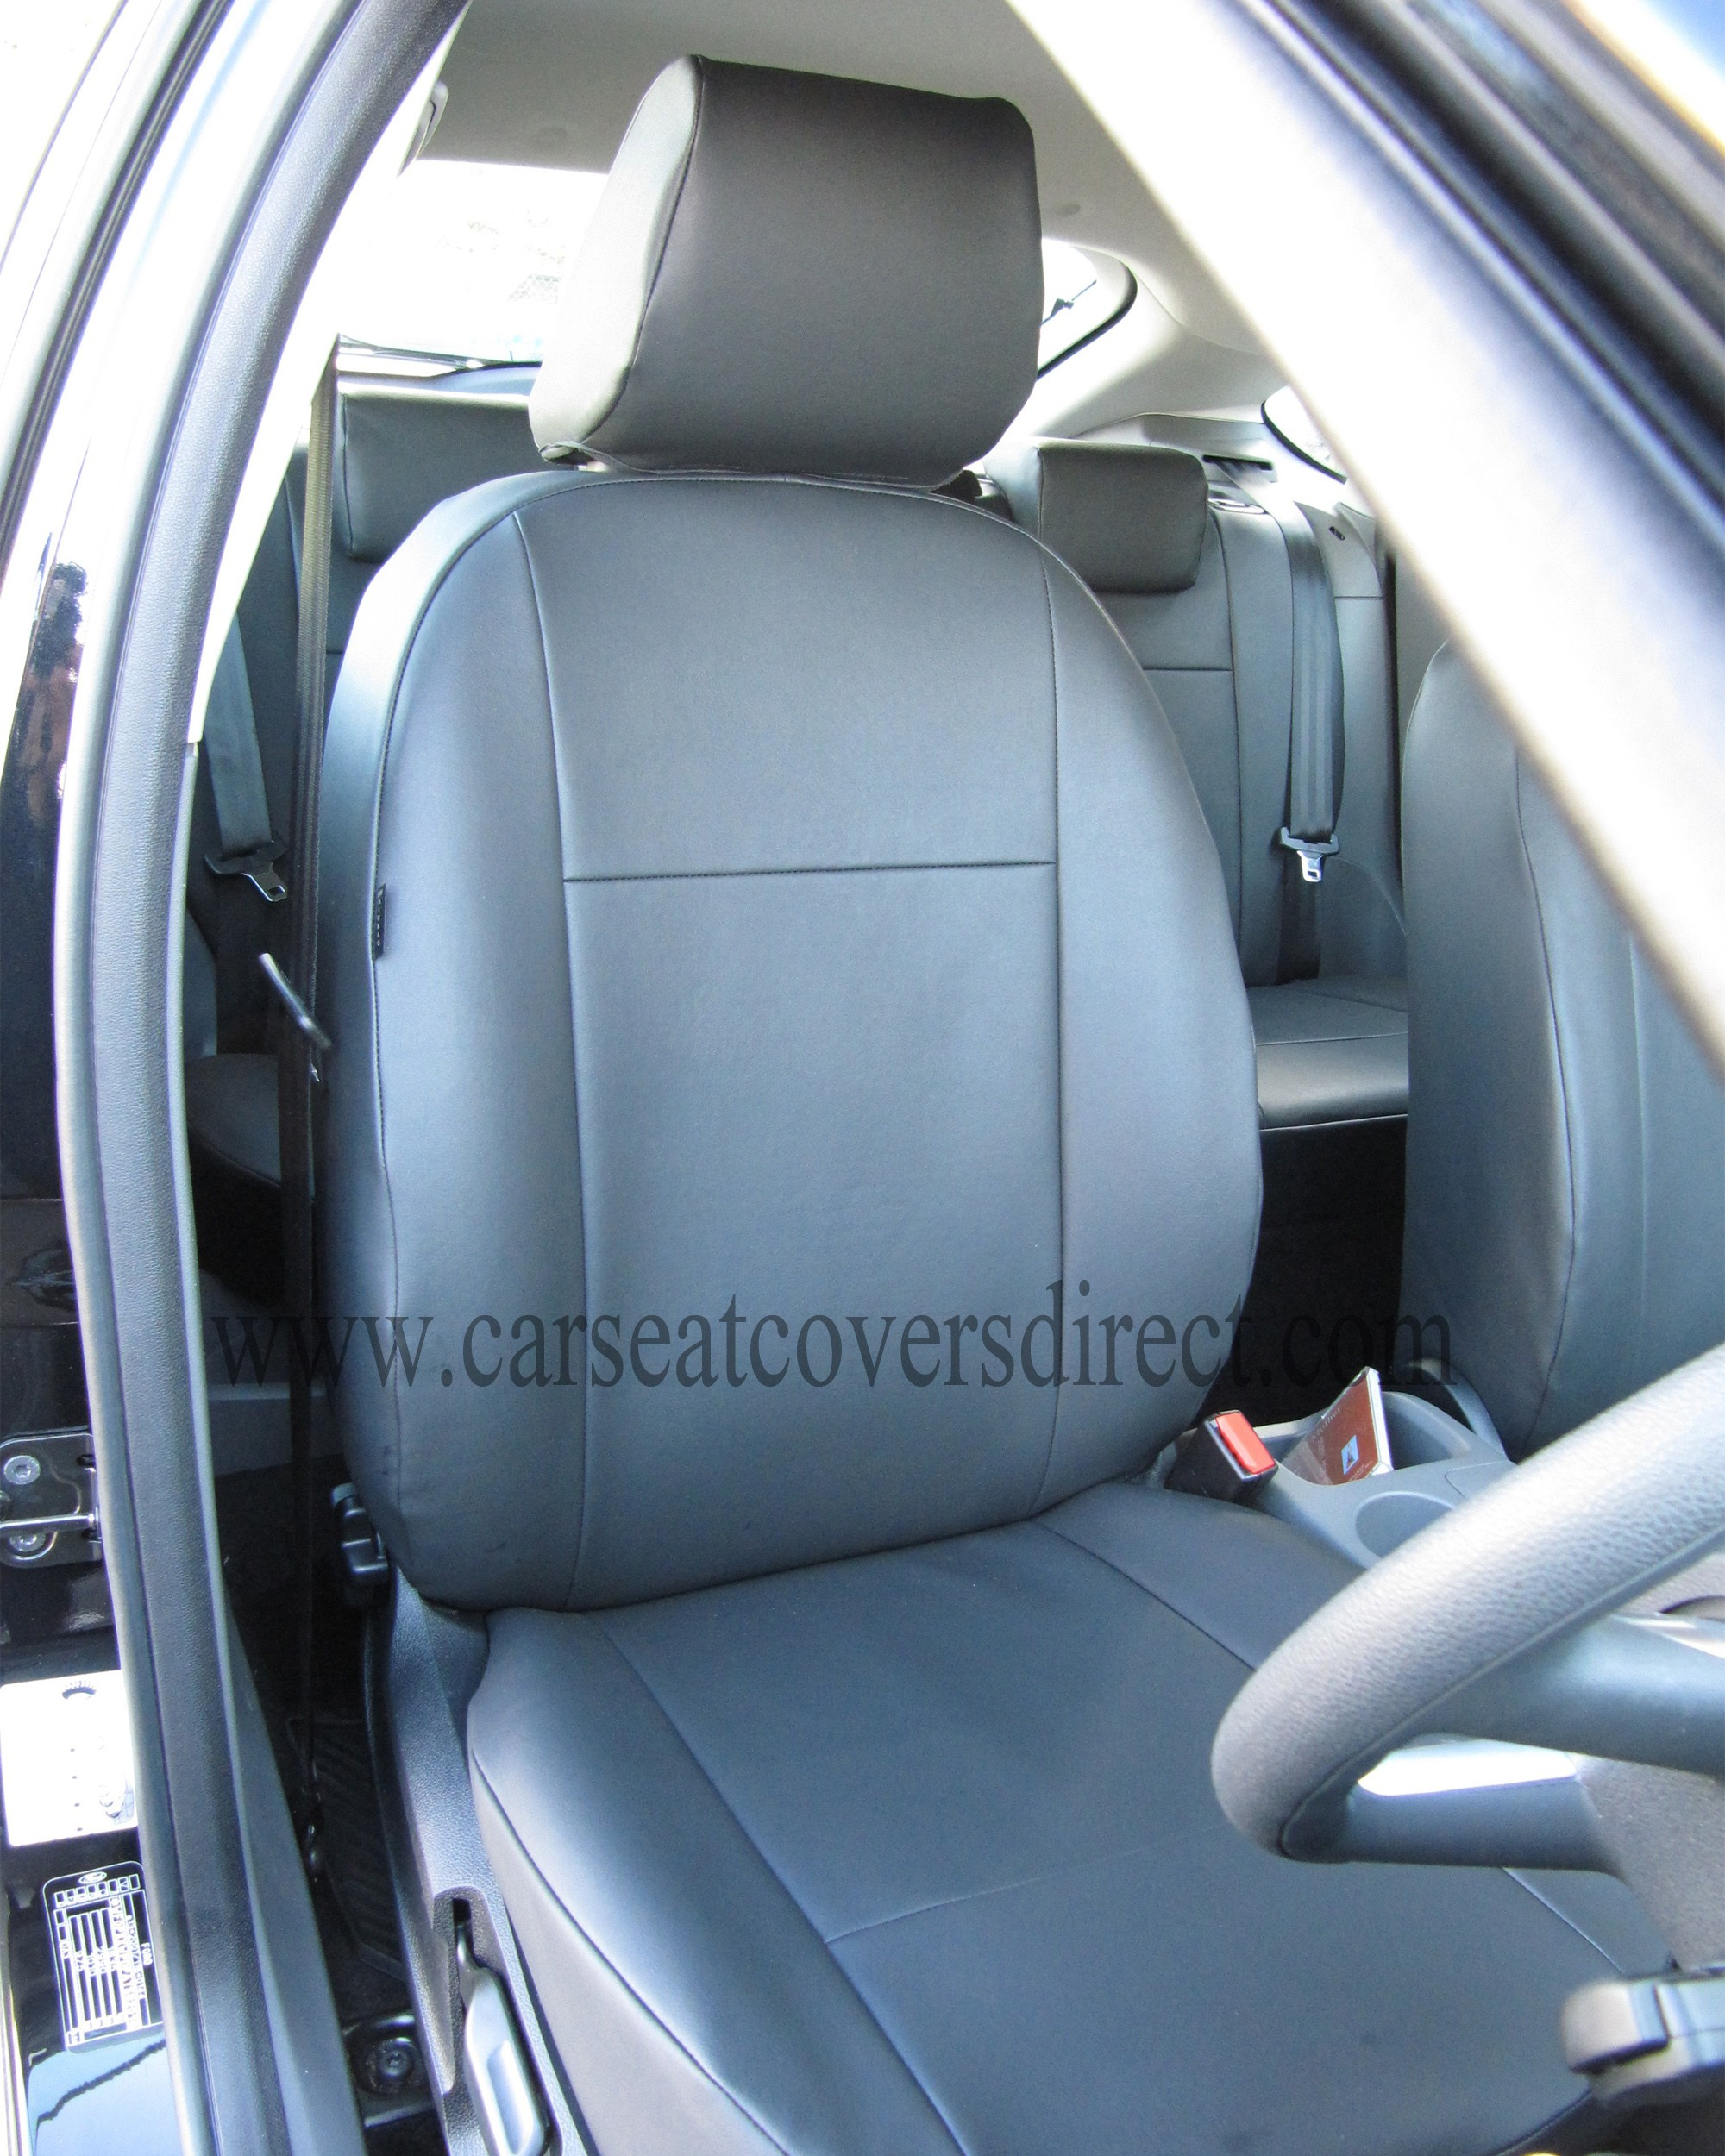 Ford Focus front seat with seat cover